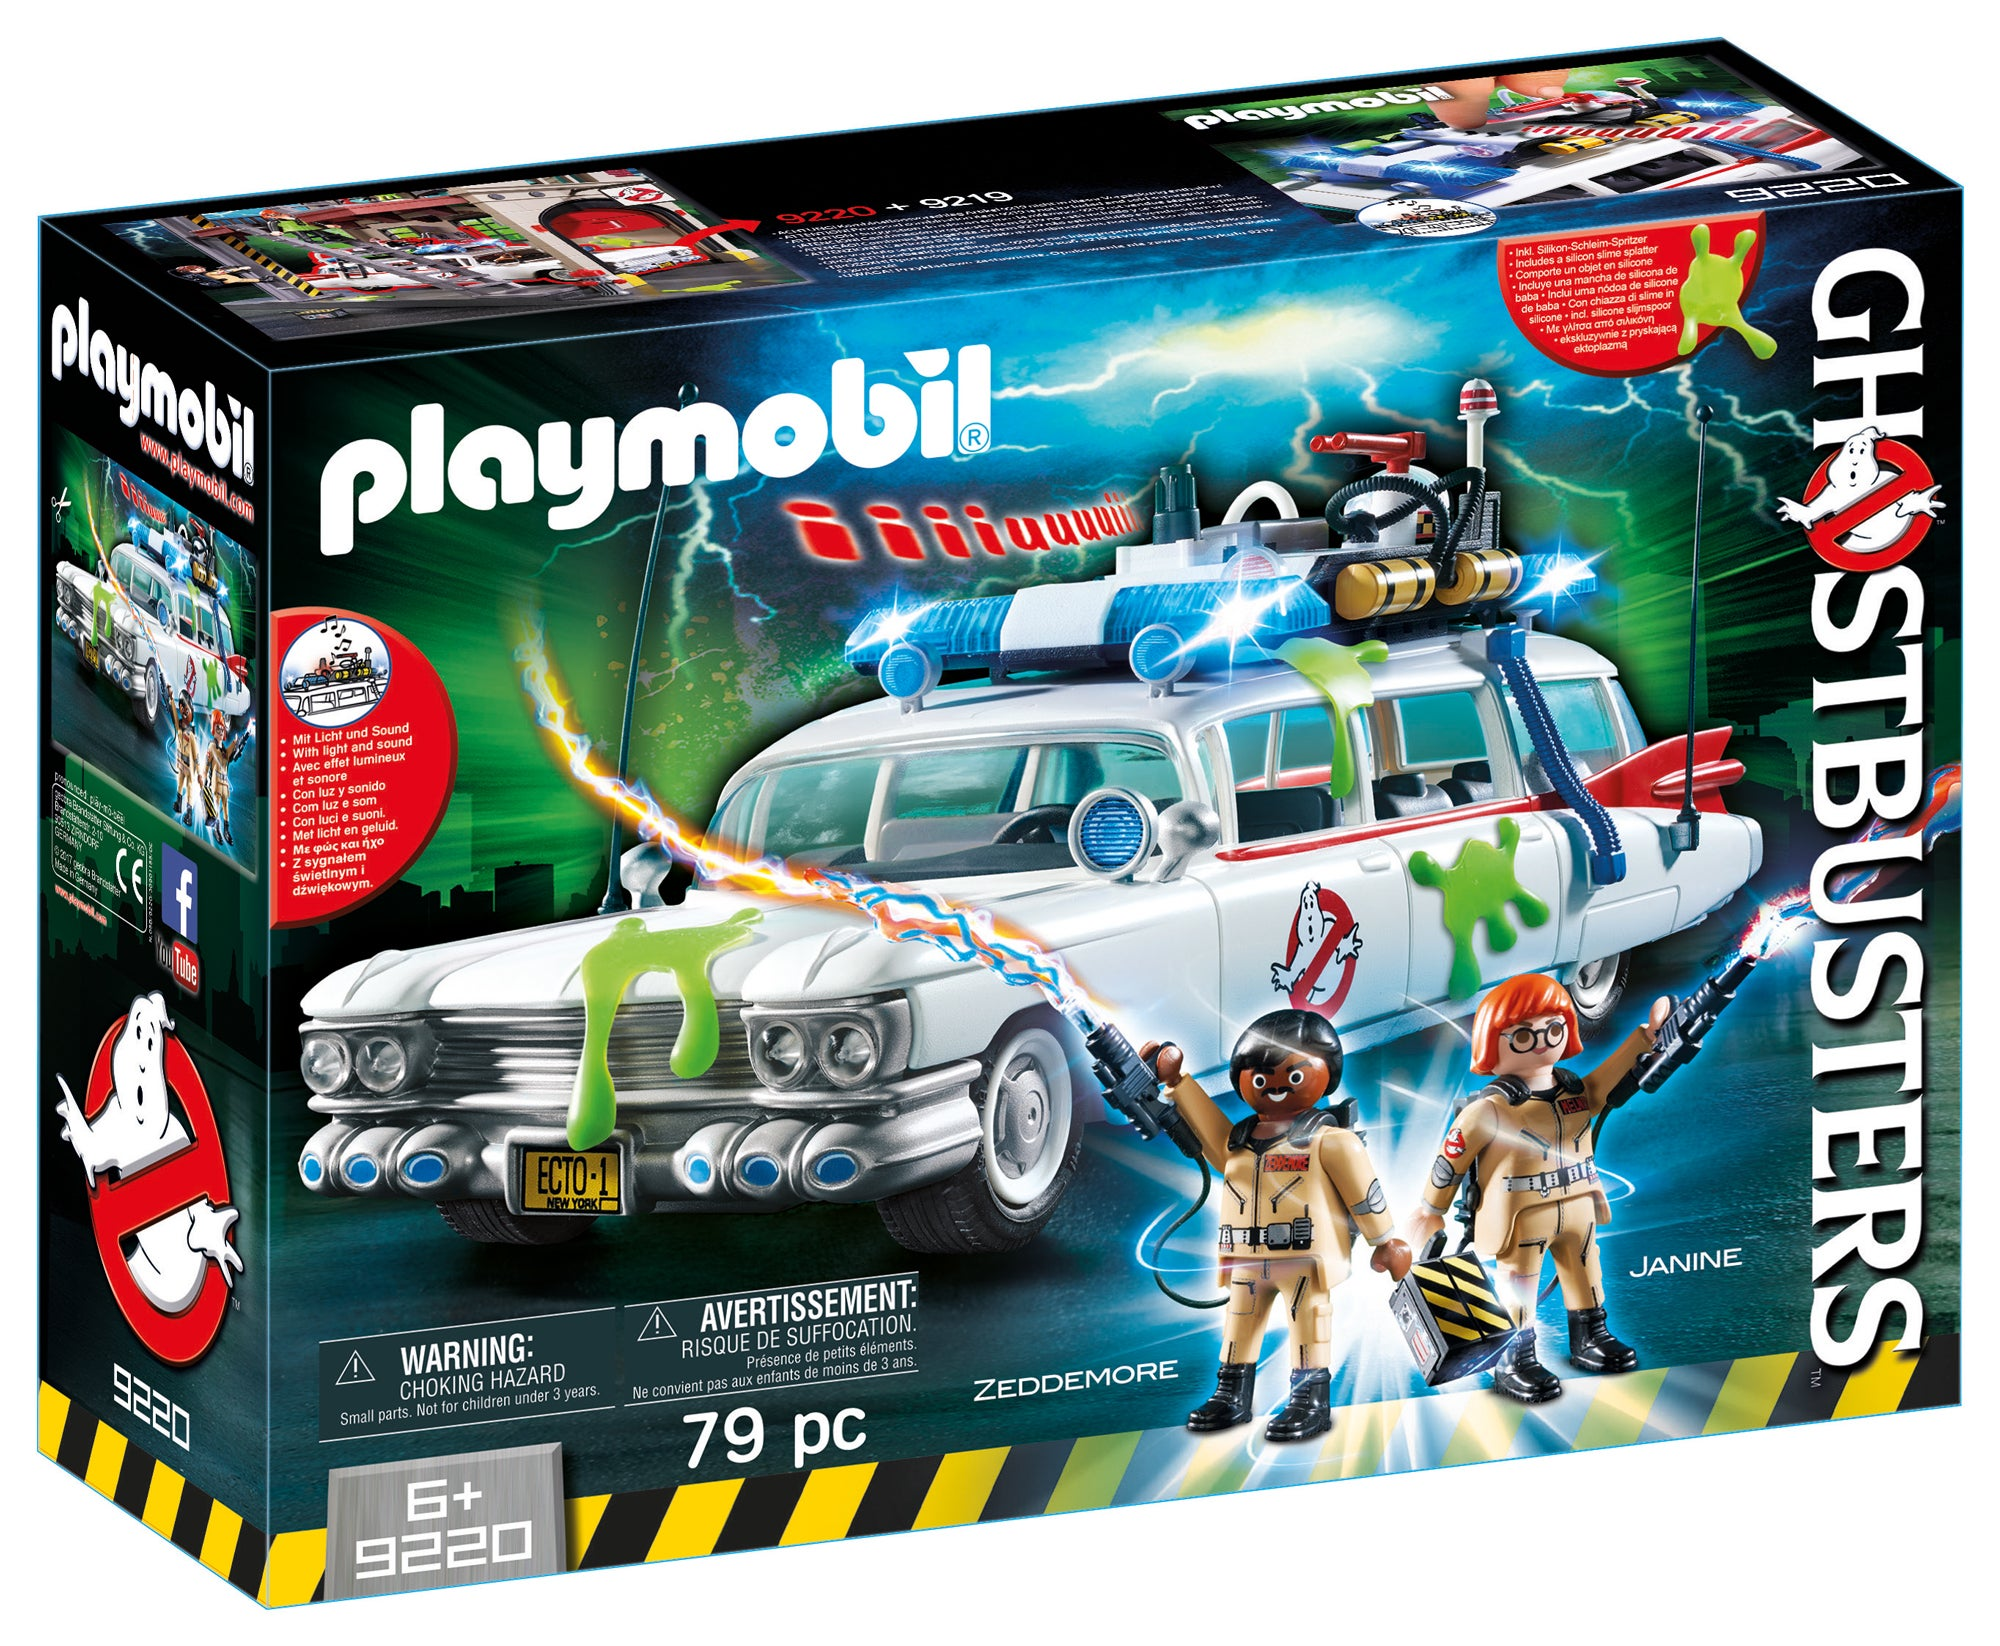 playmobil 39 s new ghostbusters toys are so great you 39 ll wish. Black Bedroom Furniture Sets. Home Design Ideas